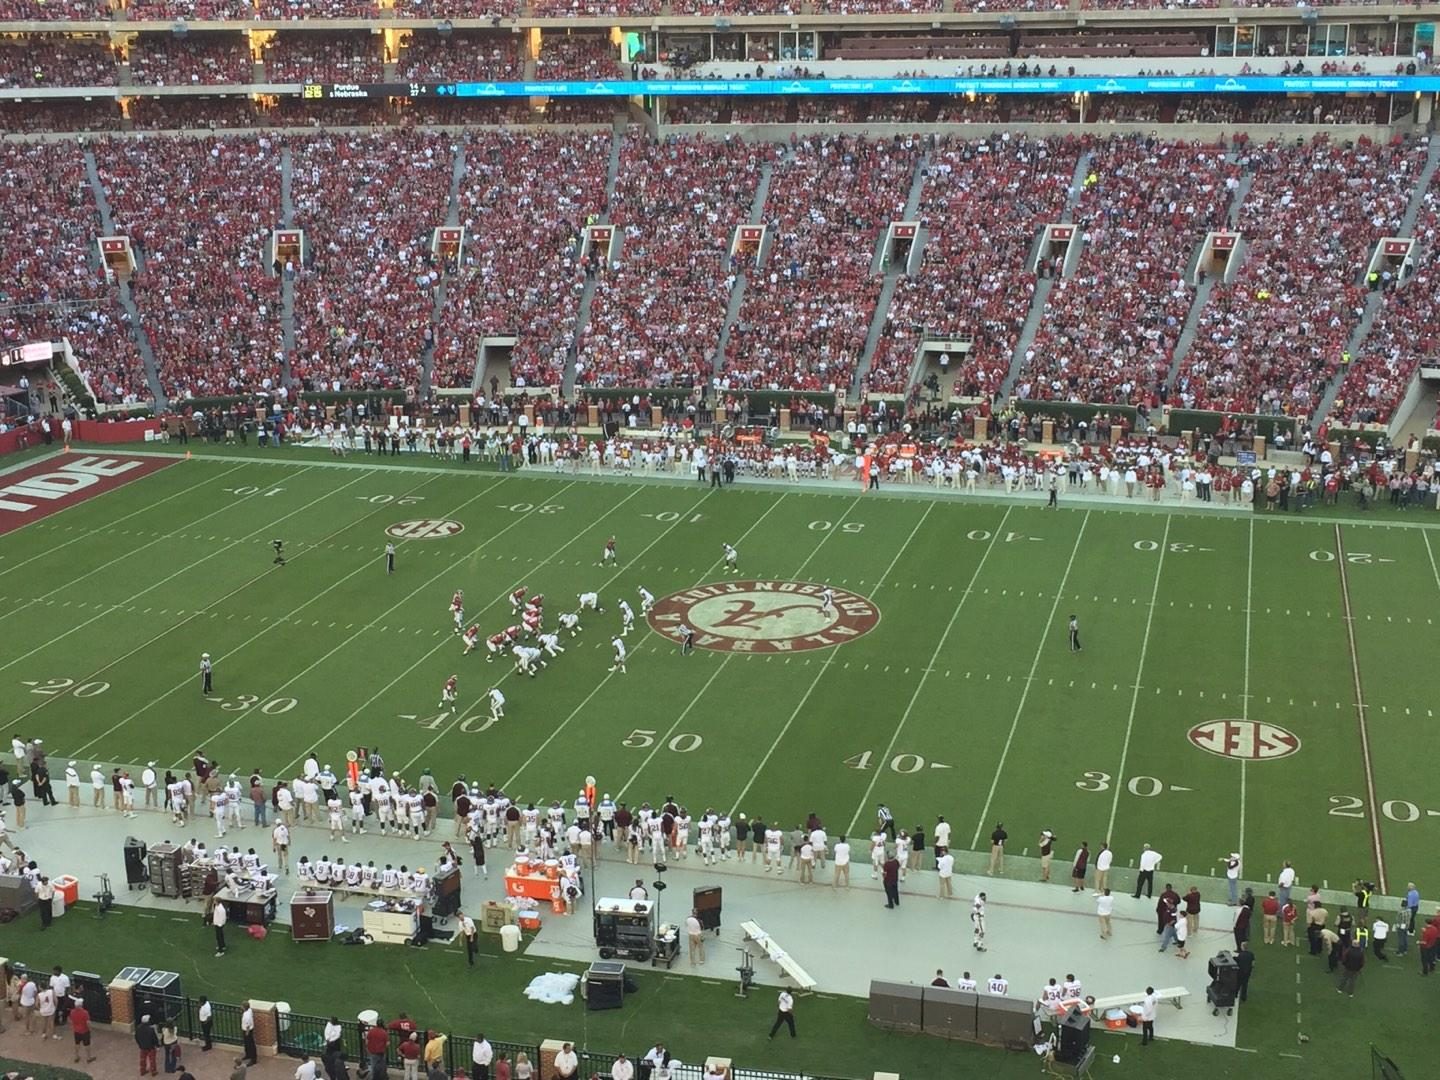 Bryant-Denny Stadium Section U4-KK Row 1 Seat 6